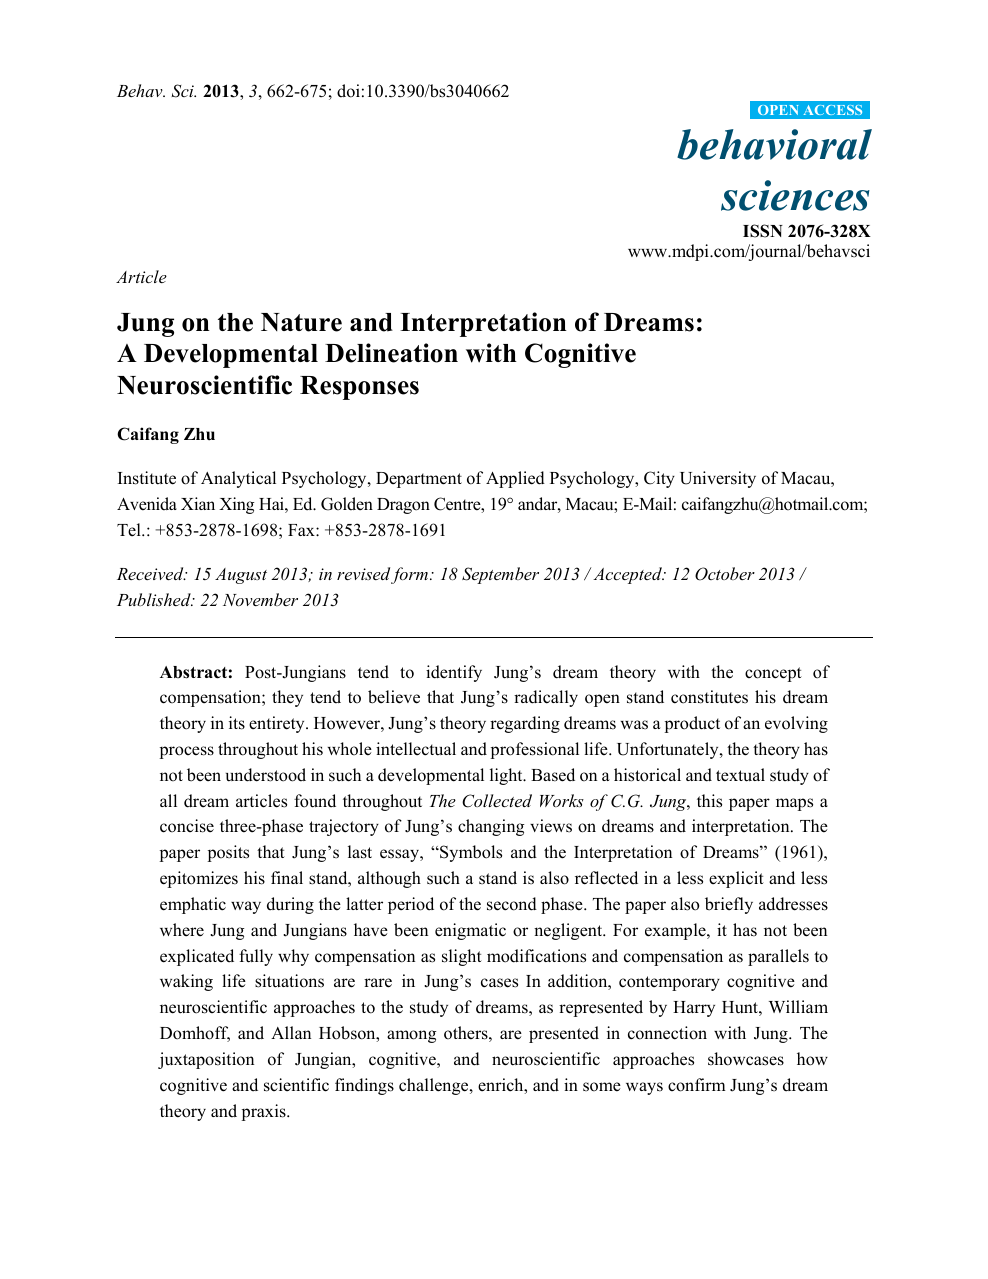 Psychology research paper on dreams top thesis proposal ghostwriting services for school